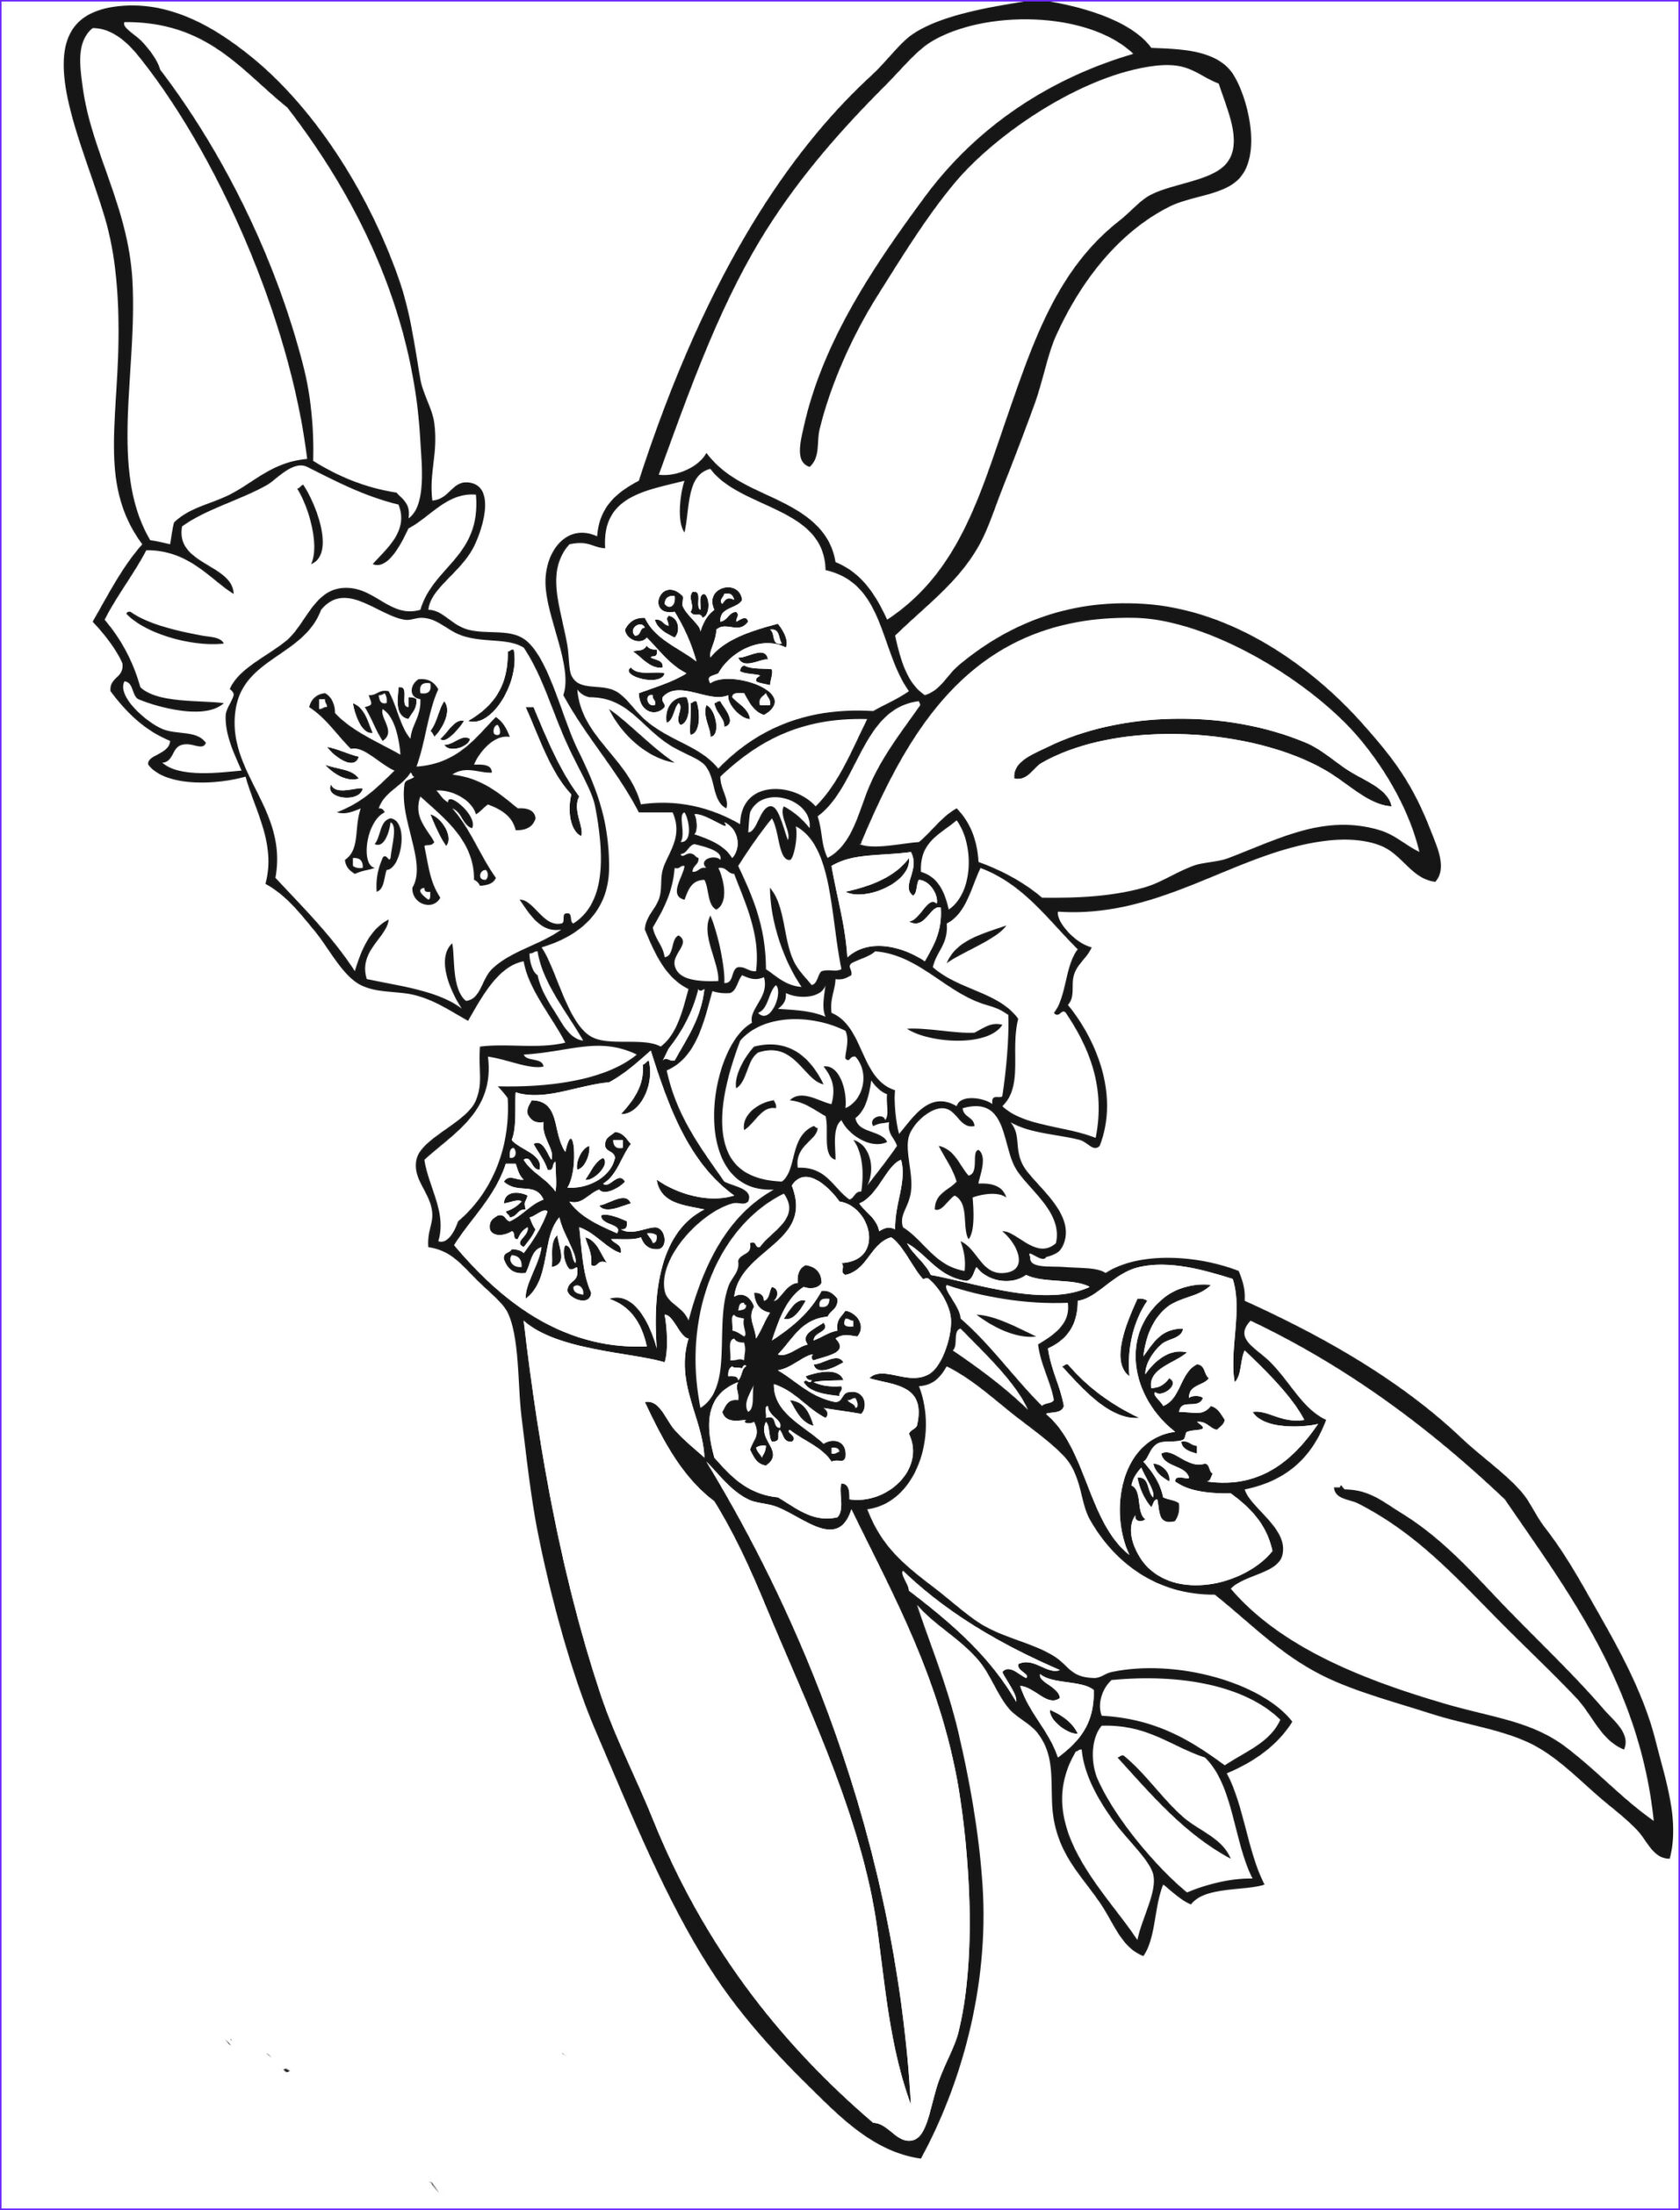 Coloring Book Flowers Luxury Image Free Printable Flower Coloring Pages for Kids Best